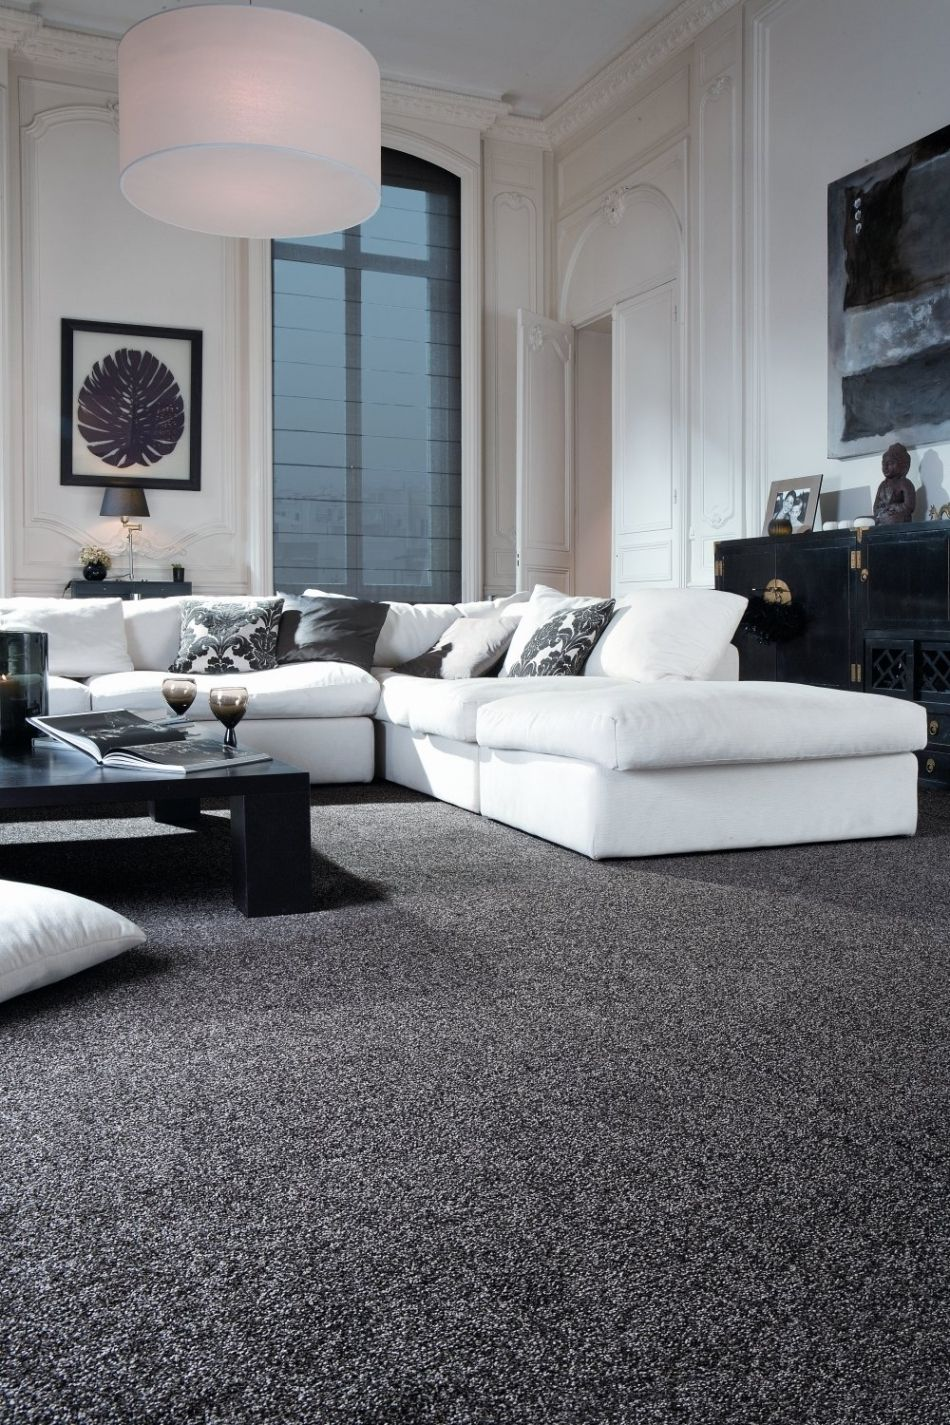 101 Sophisticated Living Room Modern Cool Carpet Rug With Music And More Ideas Freshouz Com Grey Carpet Living Room White Living Room Decor Black And White Living Room Decor